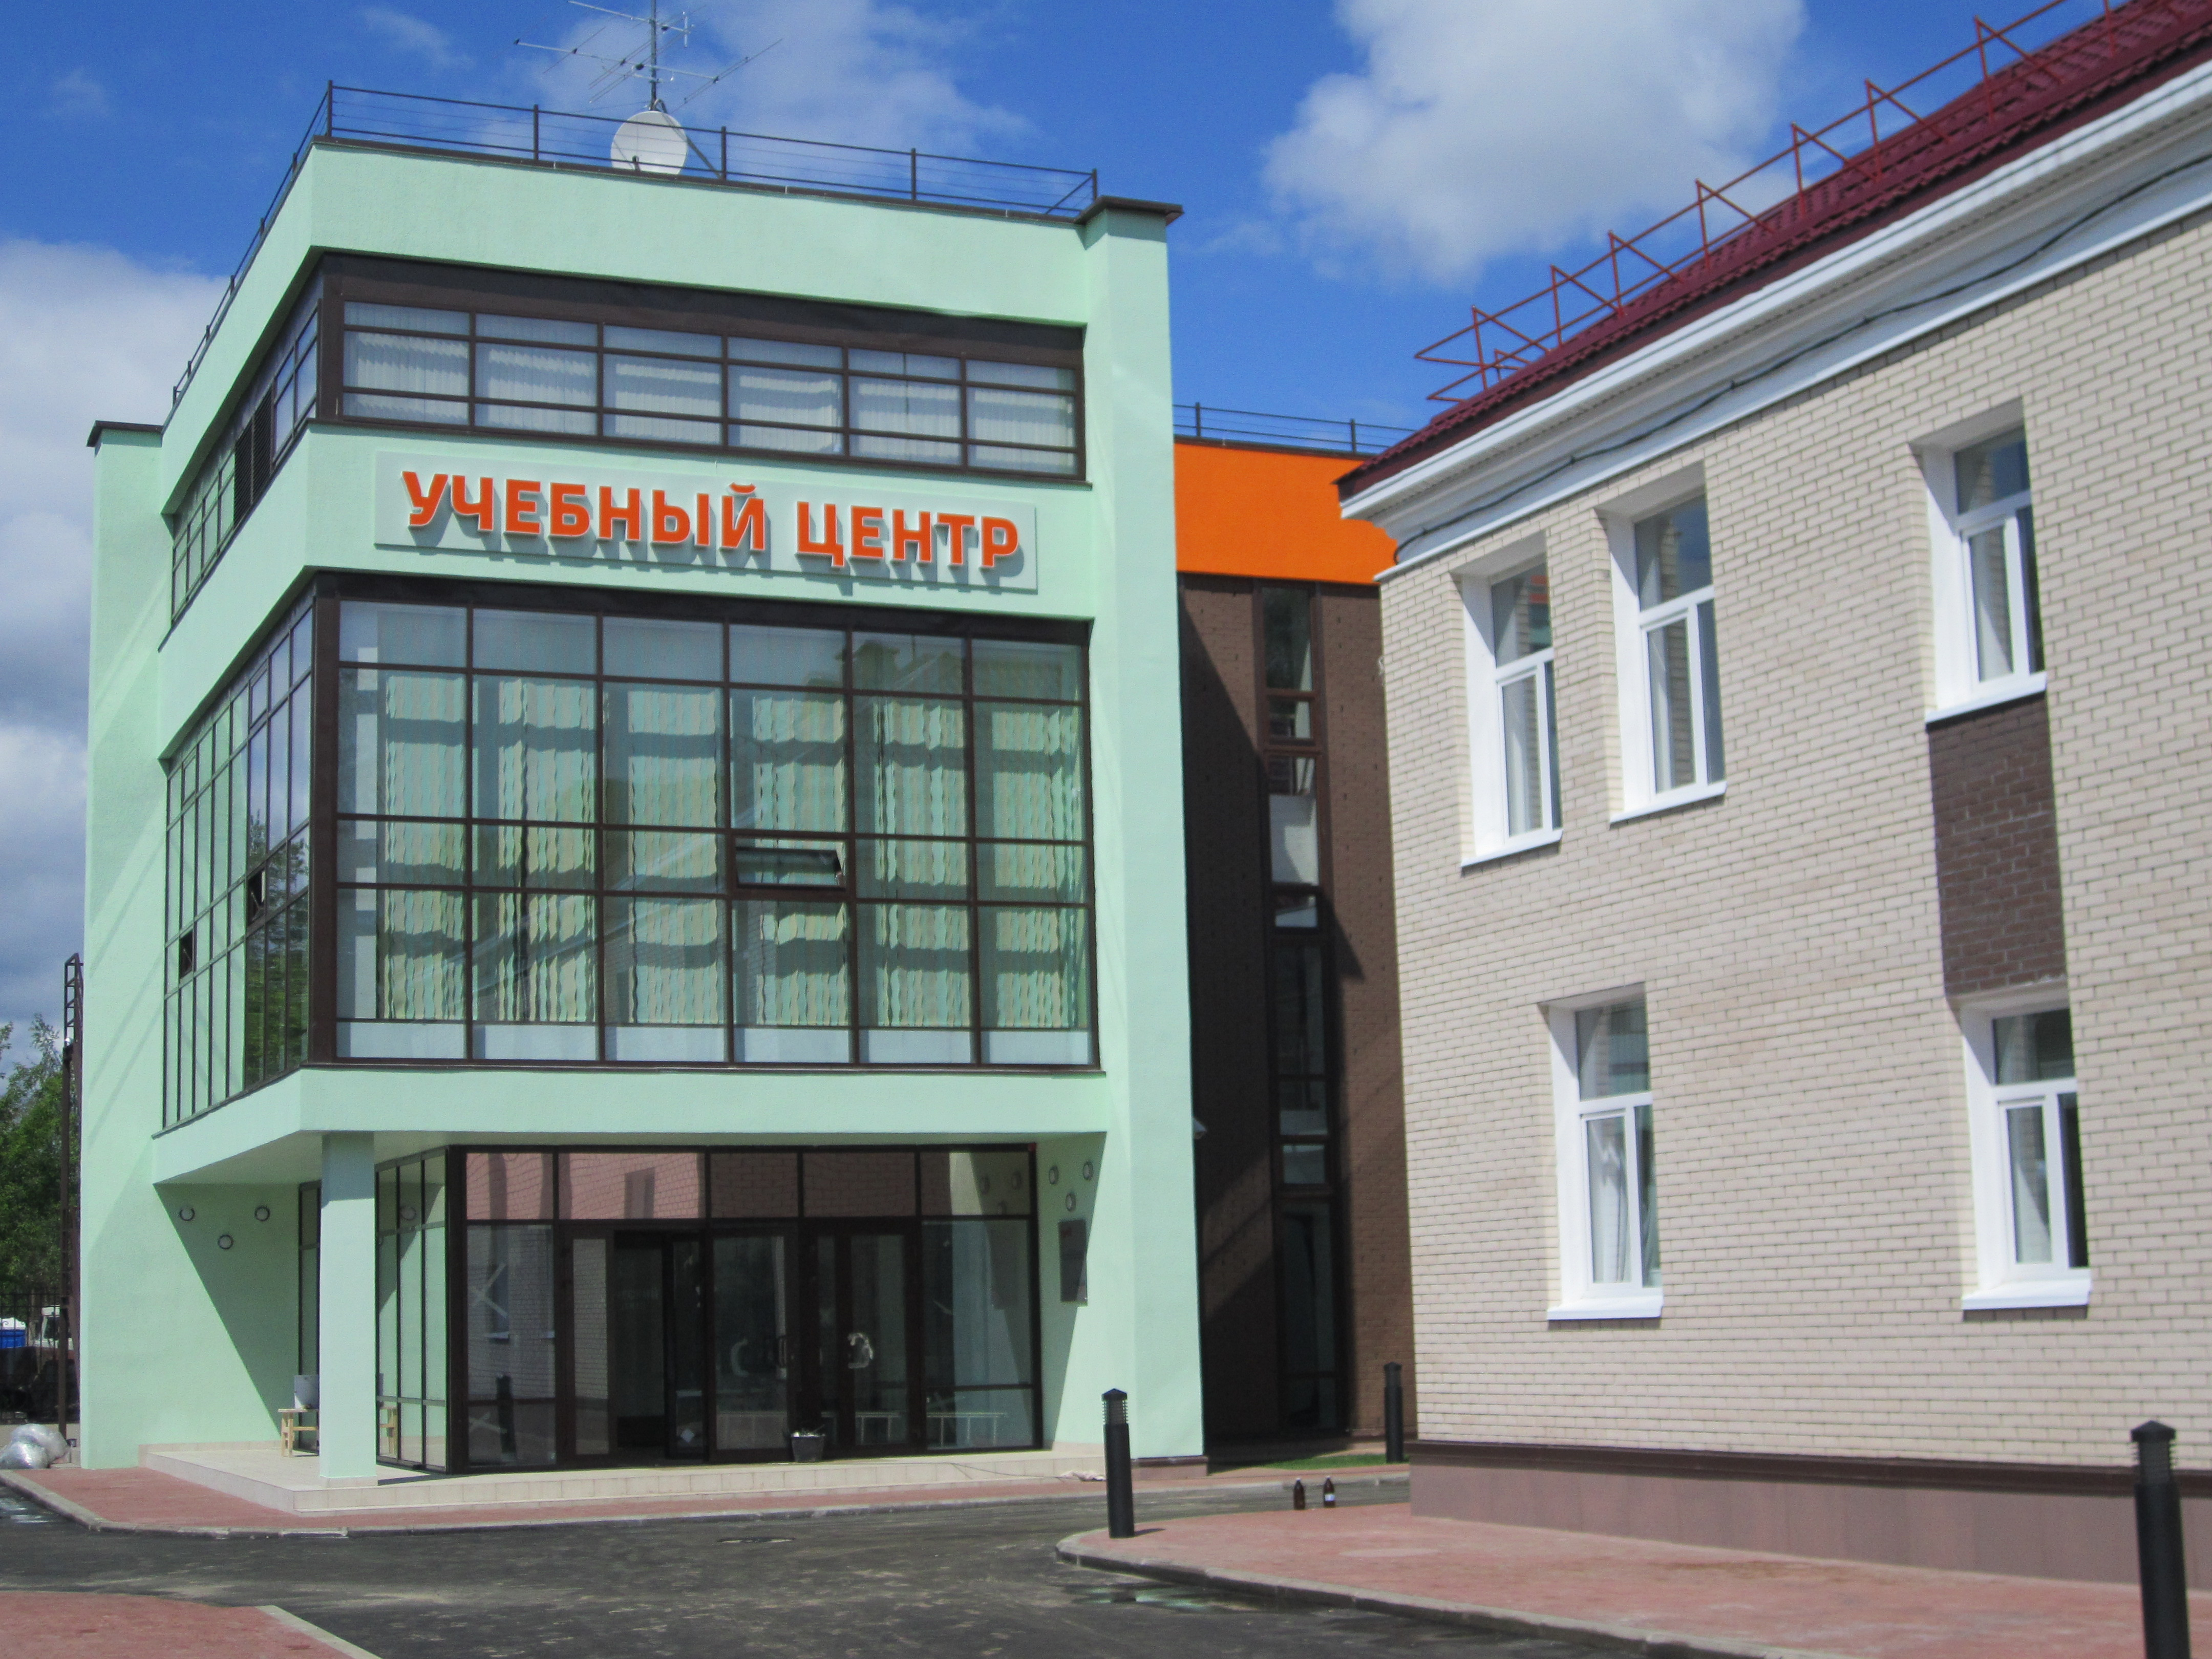 Hotel of the Russian Railway Educational Center